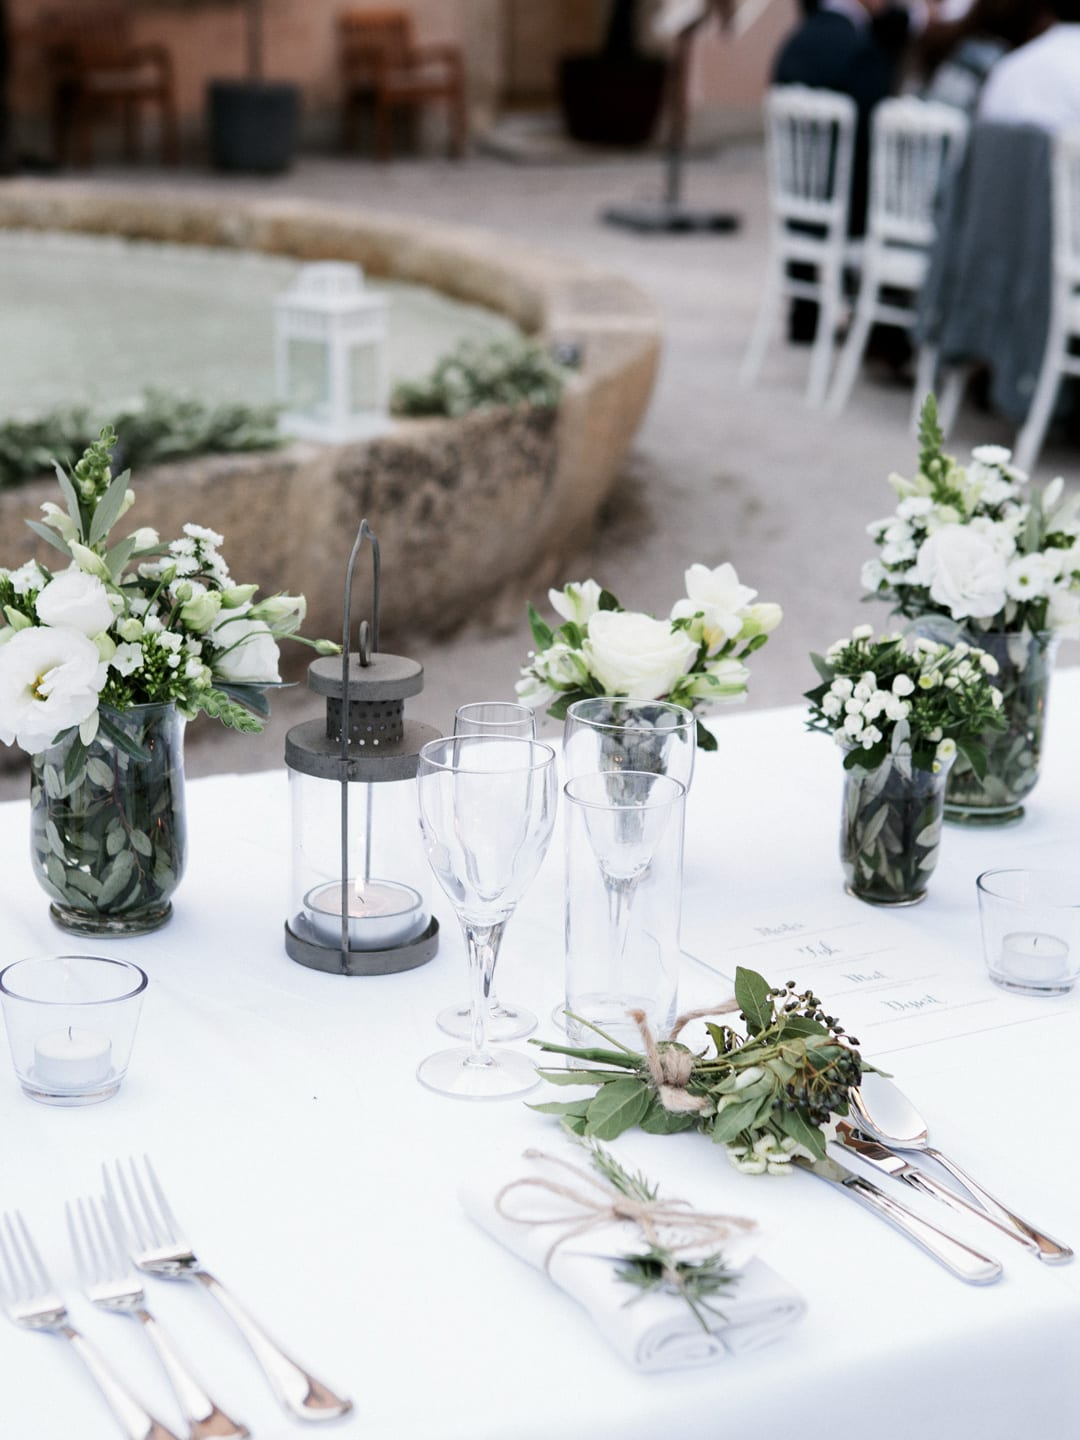 White and green wedding table setting